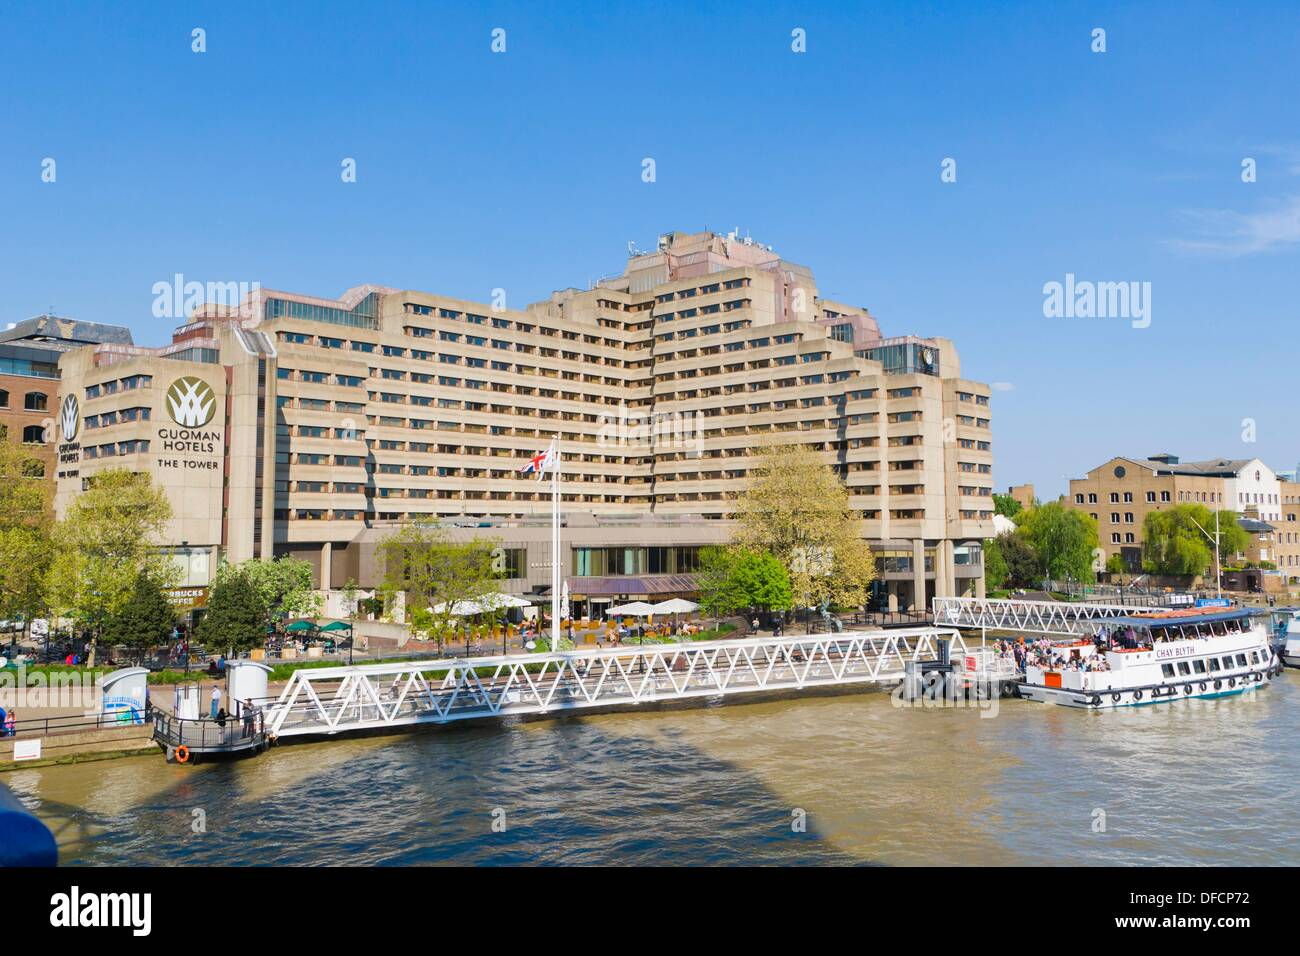 The Tower Hotel Guoman Hotels By River Thames With St